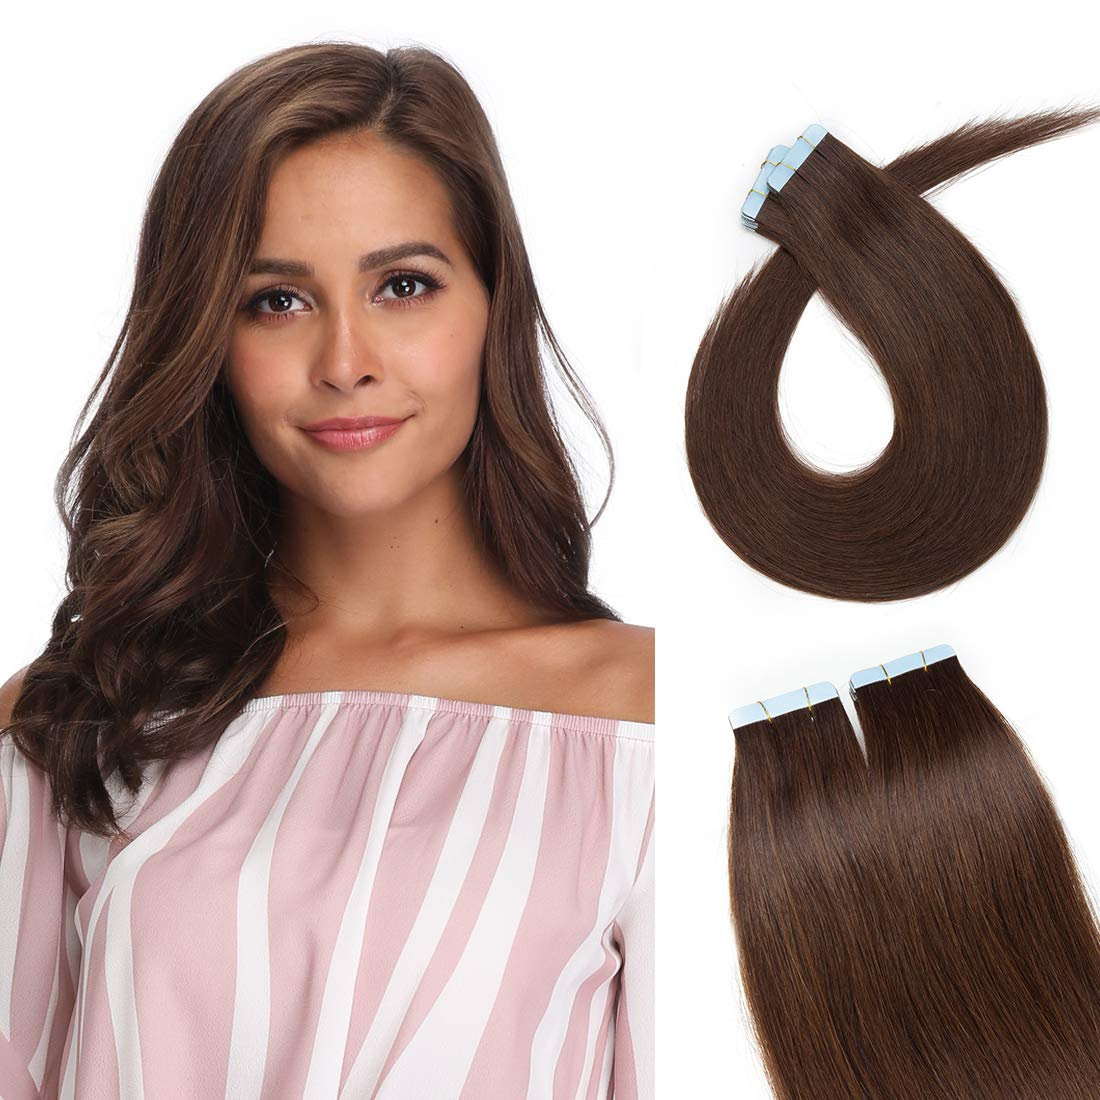 S-noilite 20Pcs 60g Remy Tape in Hair Extensions Human Hair Seamless Skin Weft Invisible Double Sided Glue in hair for women Silky Straight 24 Inch #04 Medium Brown Color